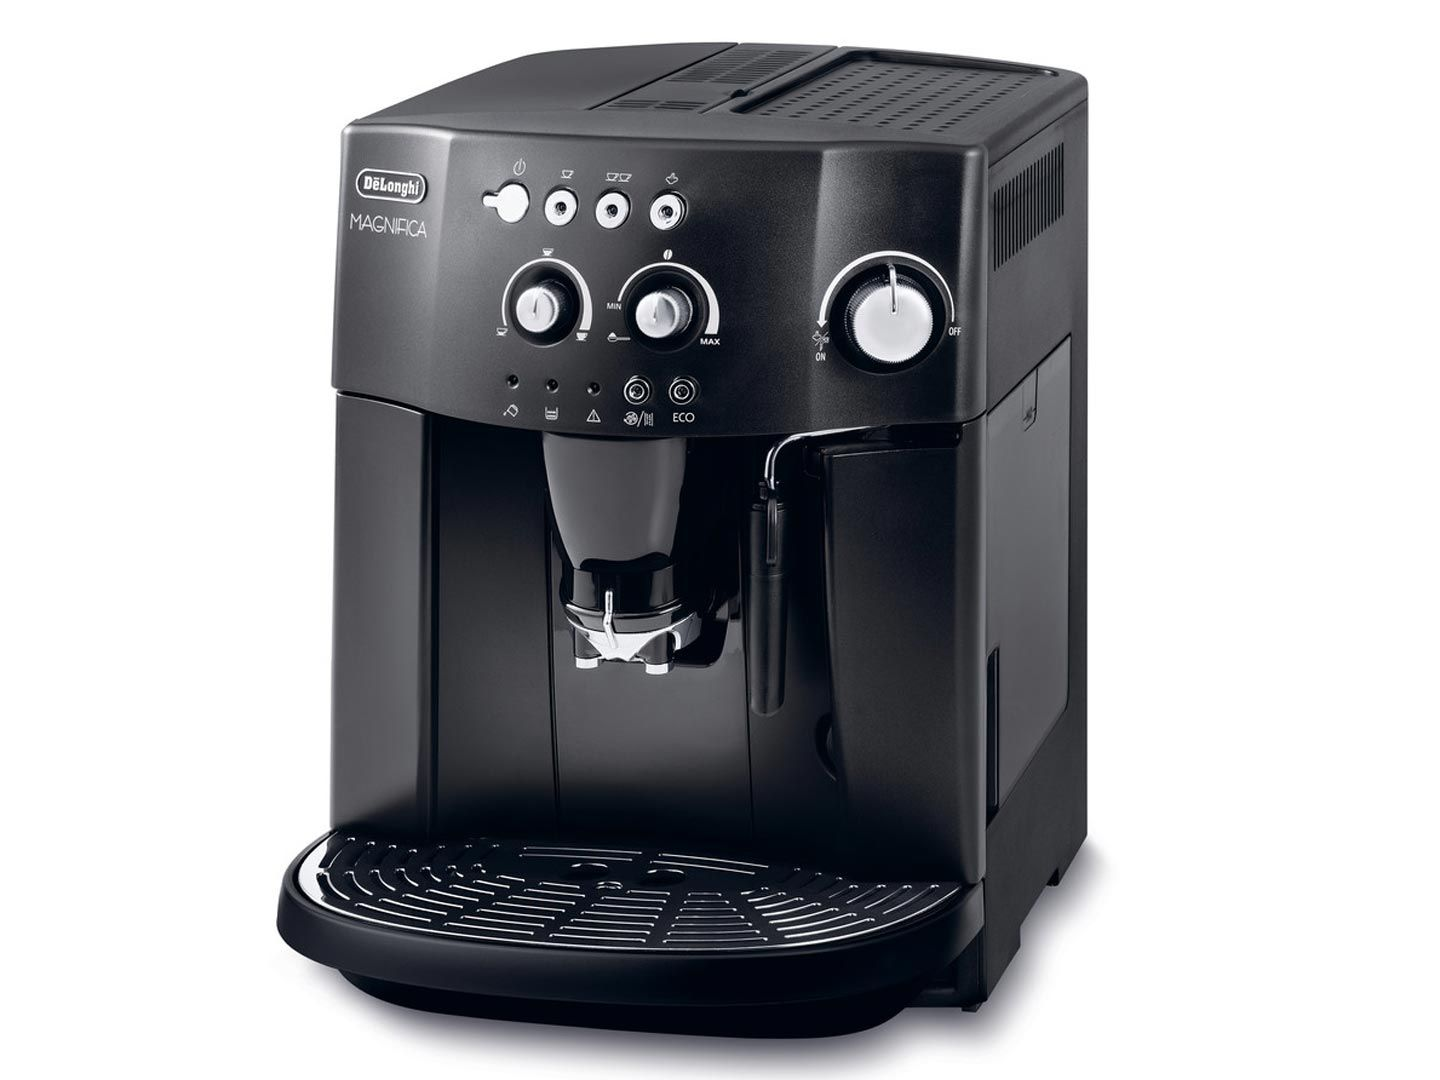 Delonghi Coffee Maker Manual : DeLonghi ESAM4000.B Magnifica Bean To Cup Coffee Maker 15 Bar Integrated Grinder 8004399322639 ...